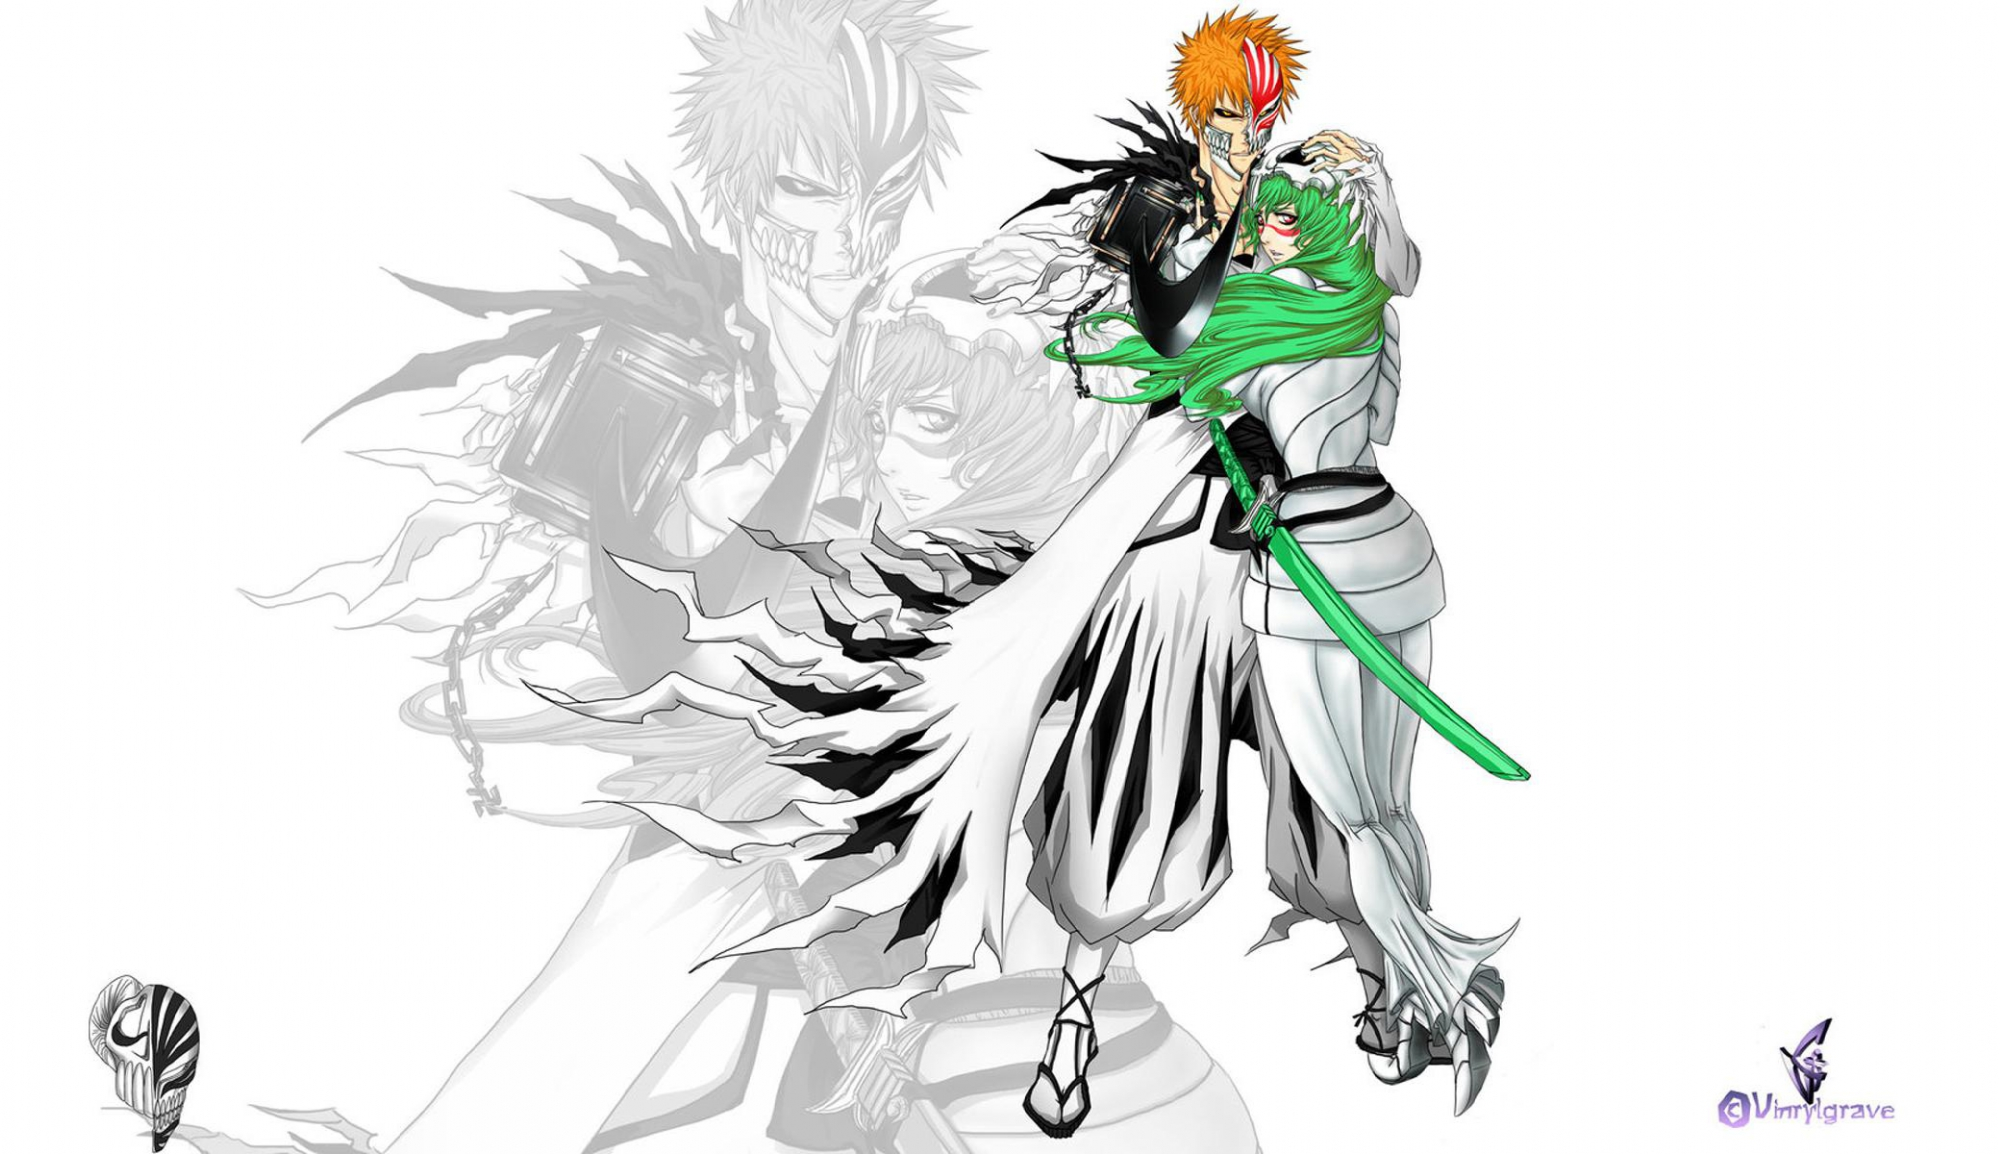 Hollow Ichigo And Neriell Espada 2080x1200